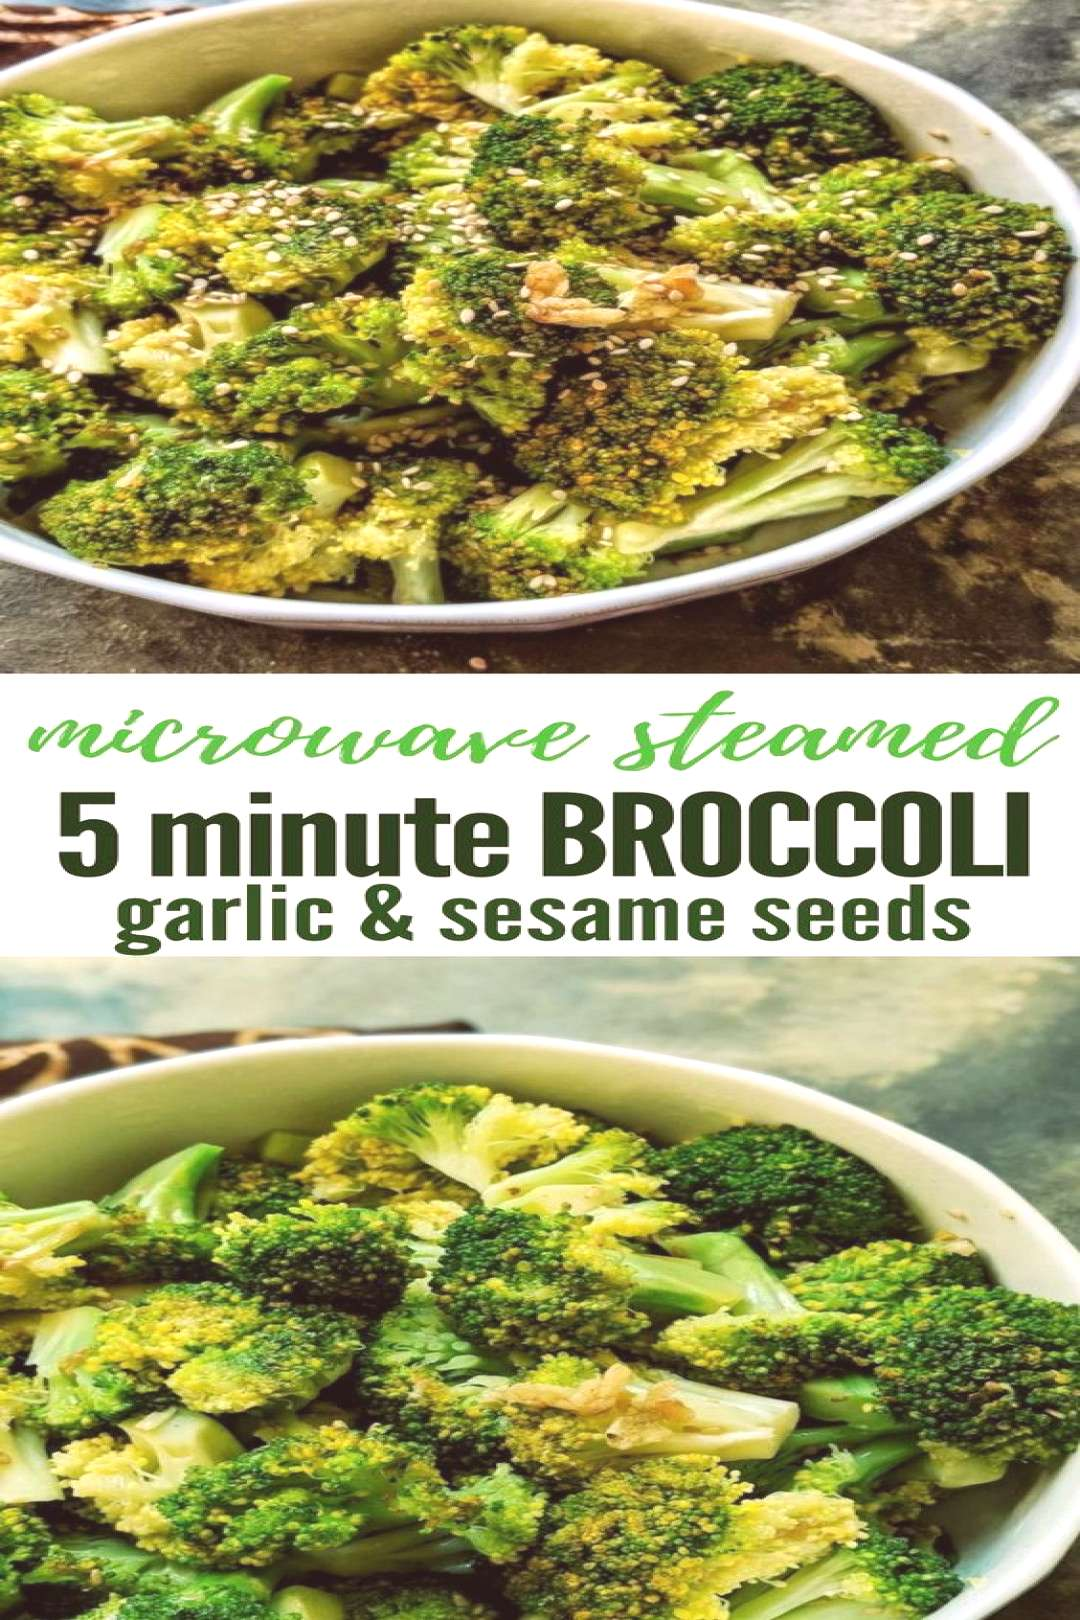 Easy 5-minute recipe for Microwave steamed broccoli with garlic and sesame seeds and ideas for 5 qu